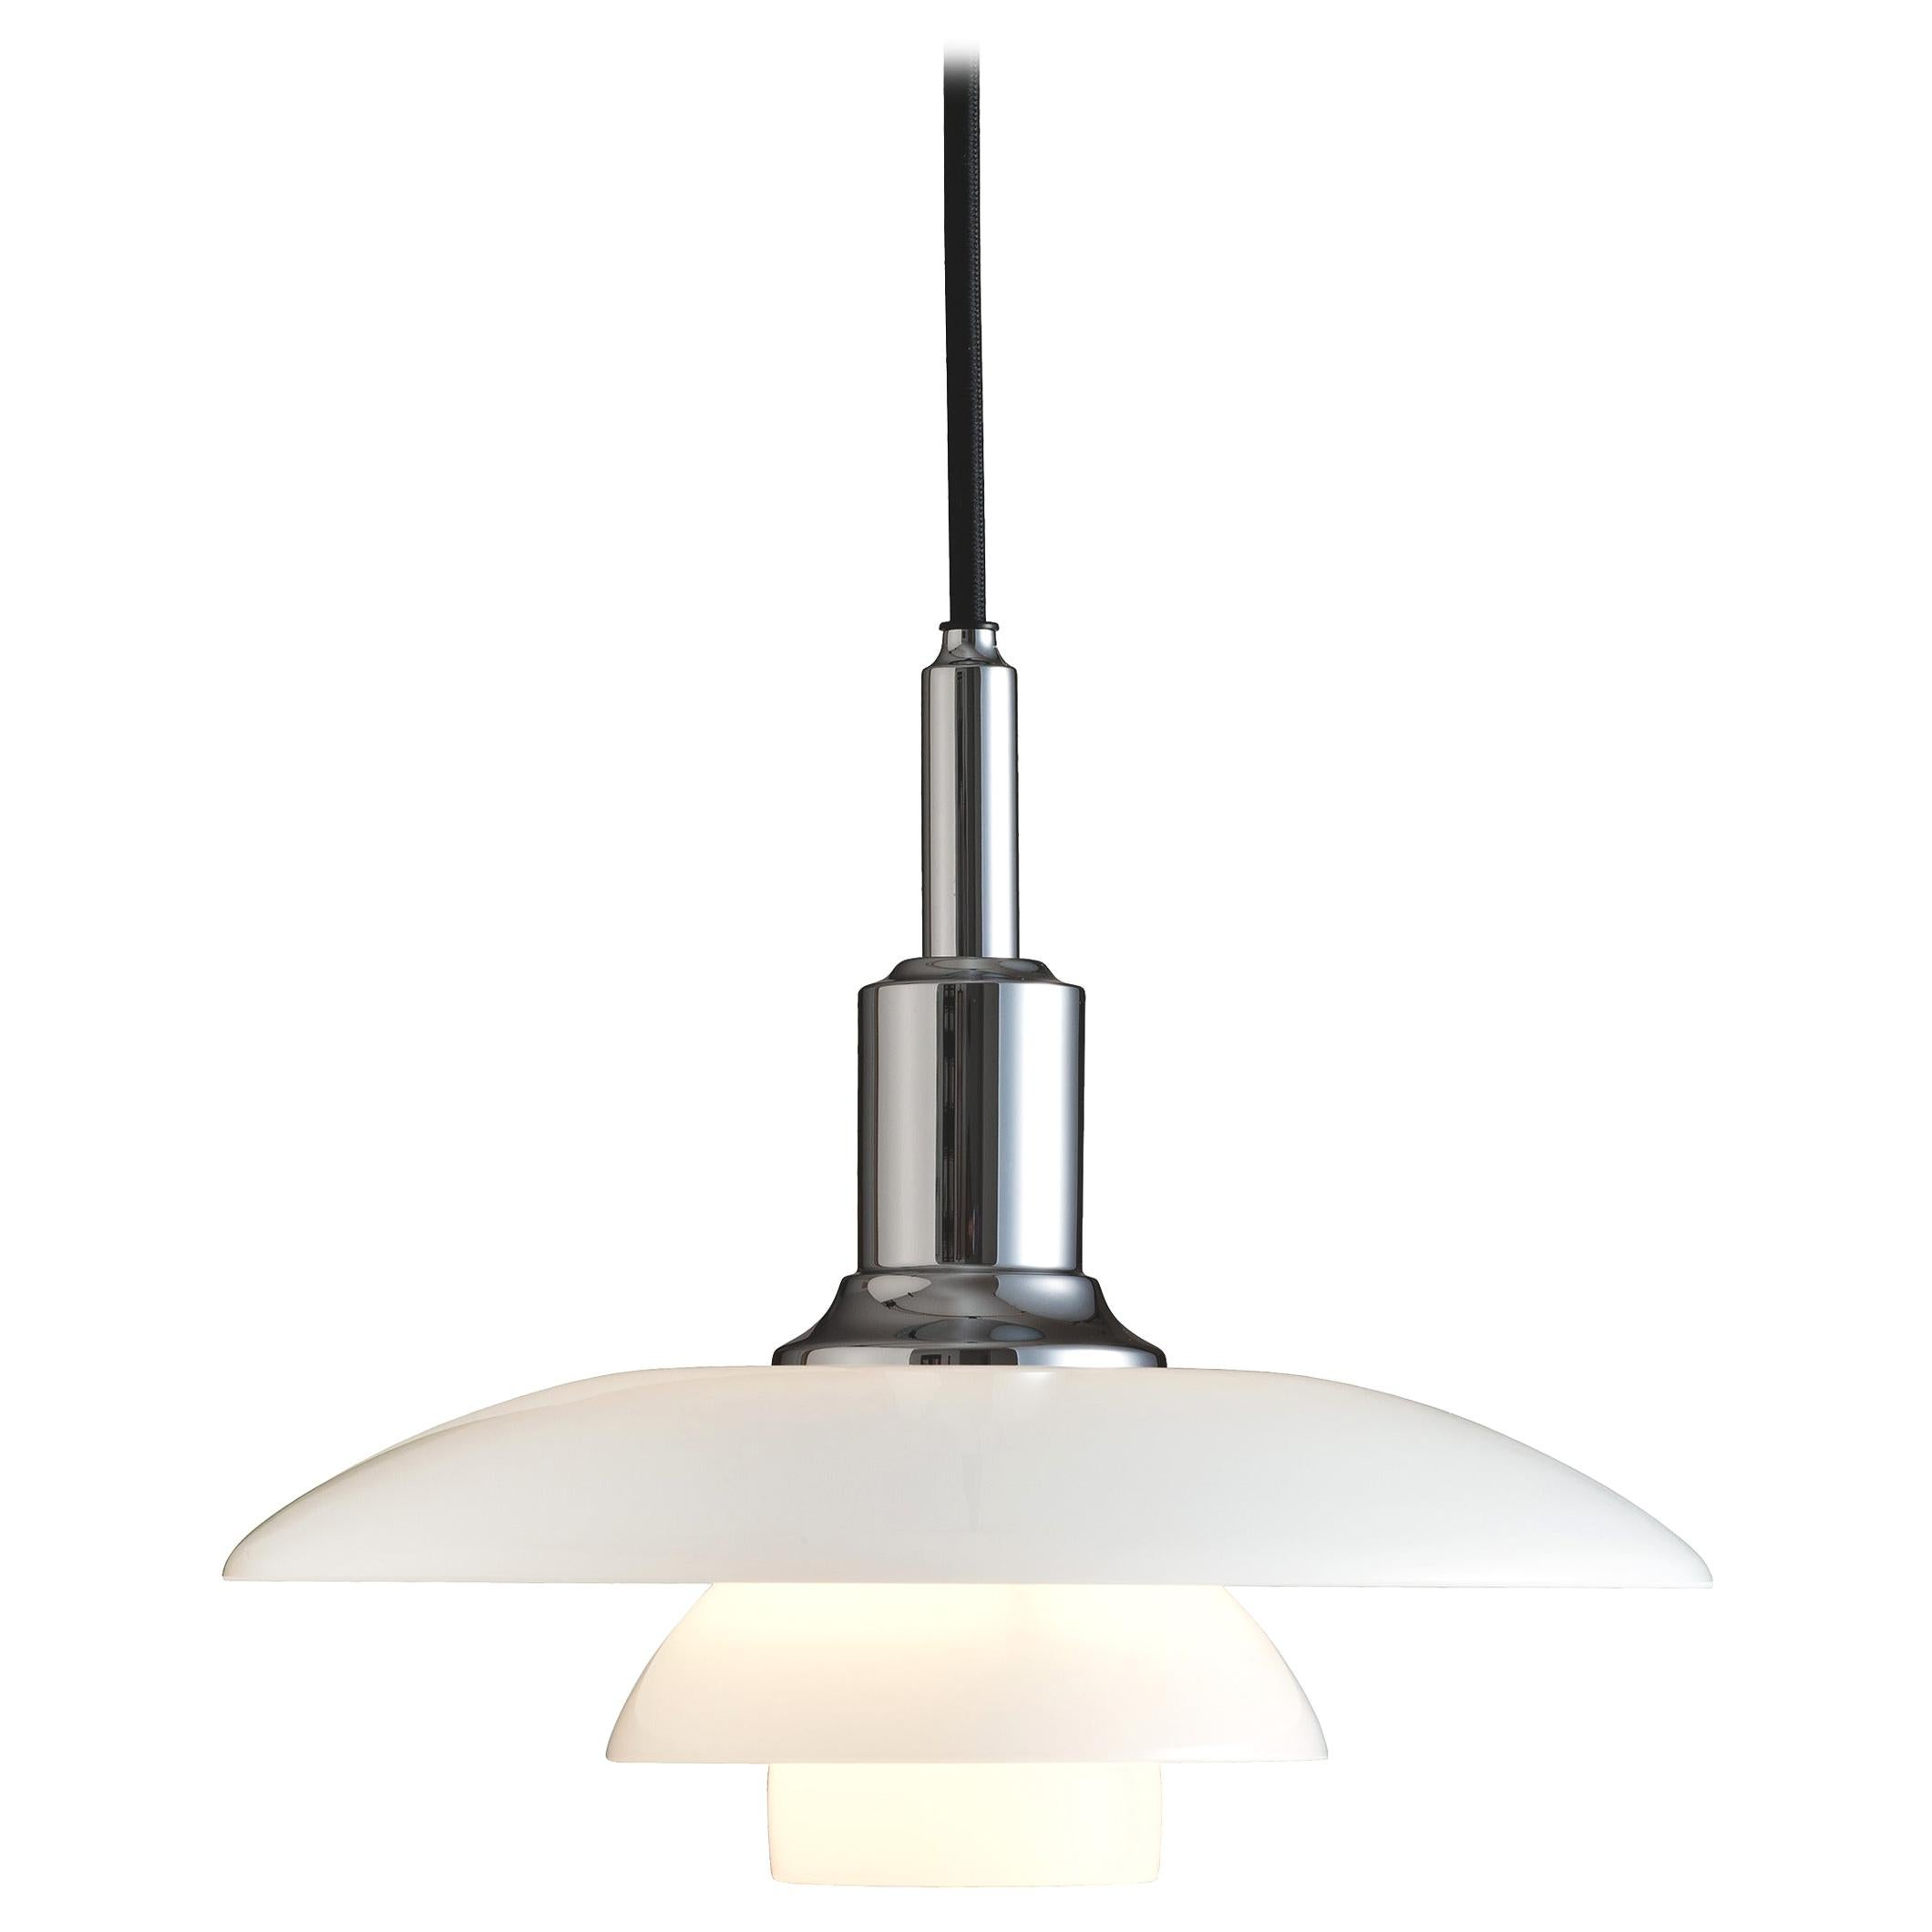 Louis Poulsen PH 3/2 Pendant Light by Poul Henningsen